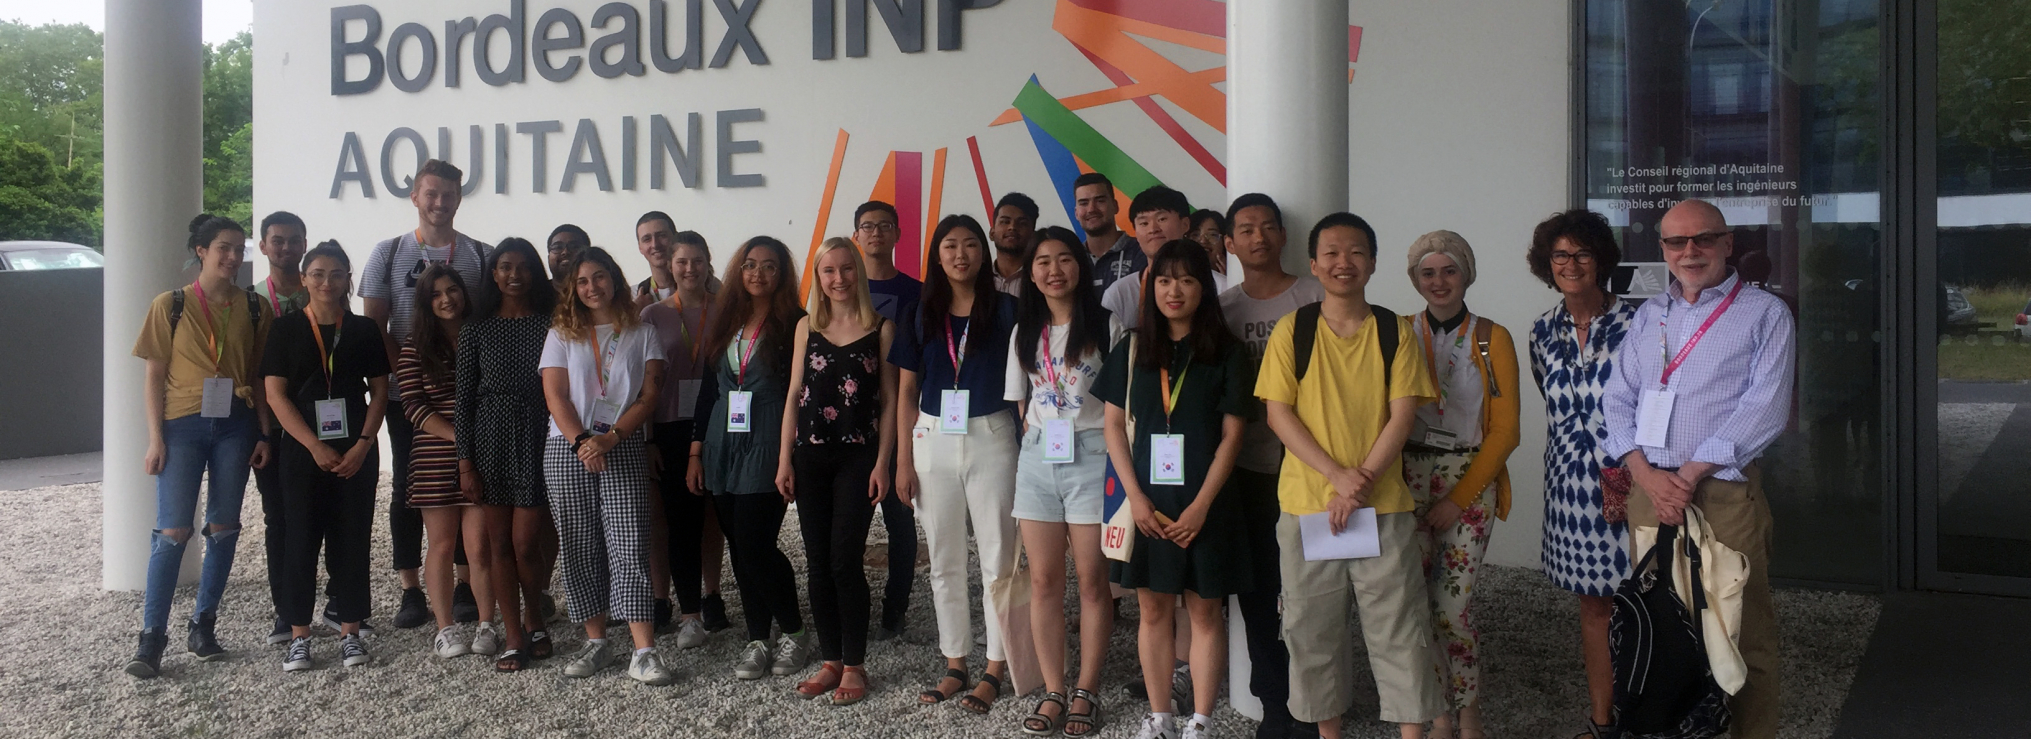 summer school bordeaux inp